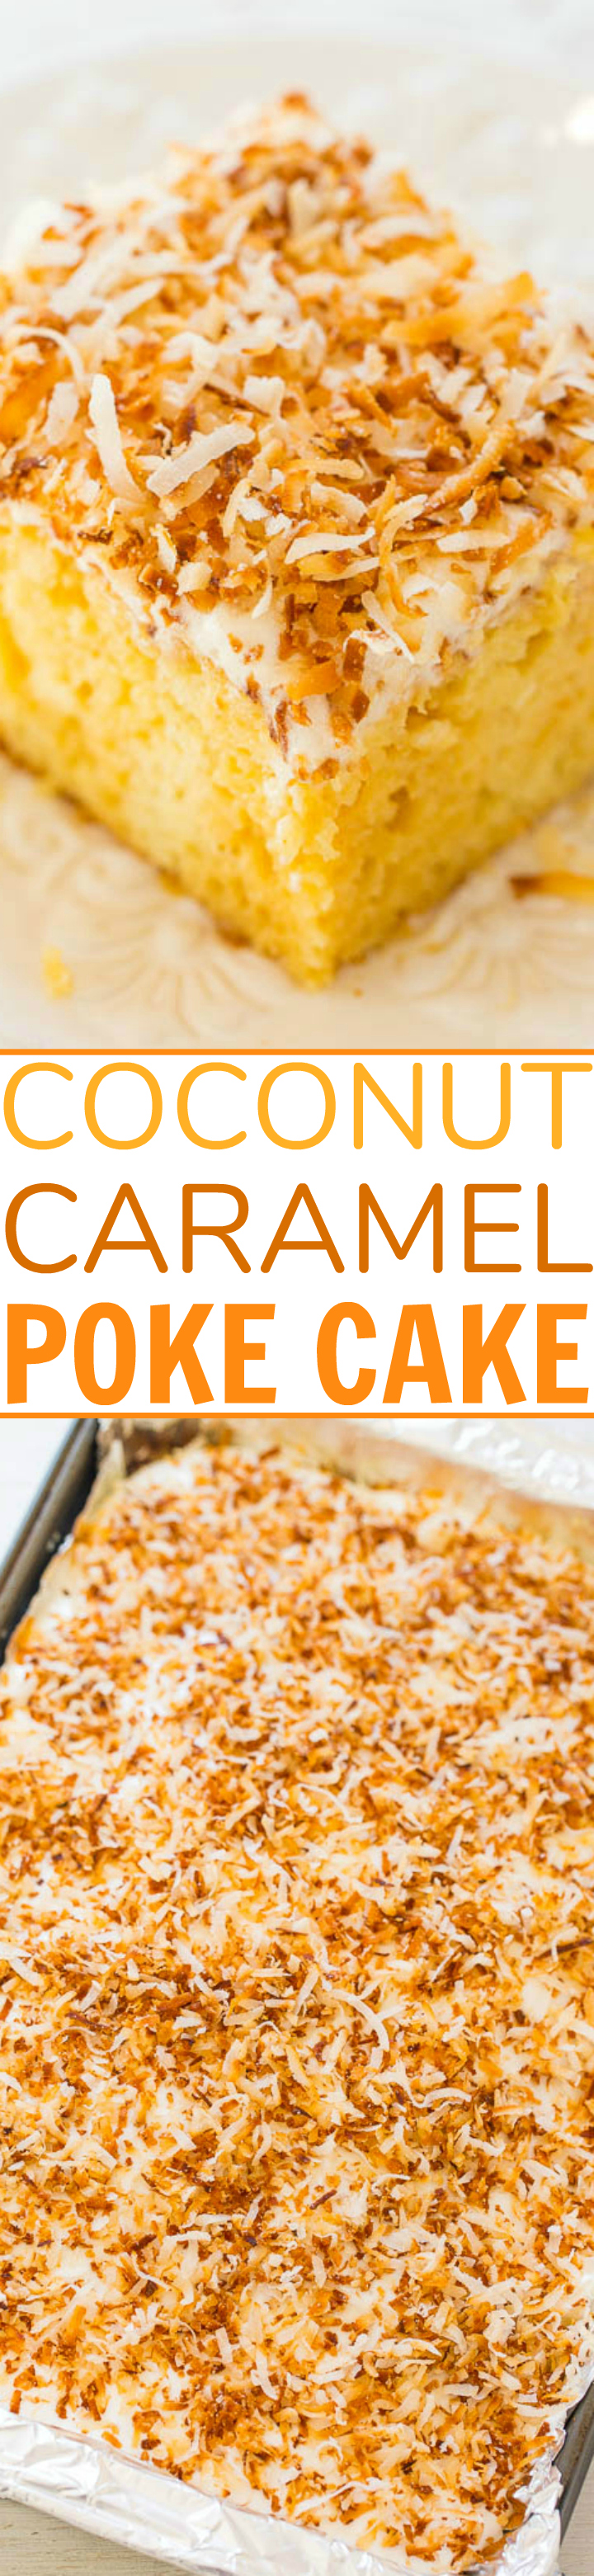 Coconut Caramel Poke Cake - An incredibly EASY super moist cake thanks to a creamy caramel mixture that's poked into the cake!! Topped with crispy toasted coconut, this cake is a DELISH winner!!